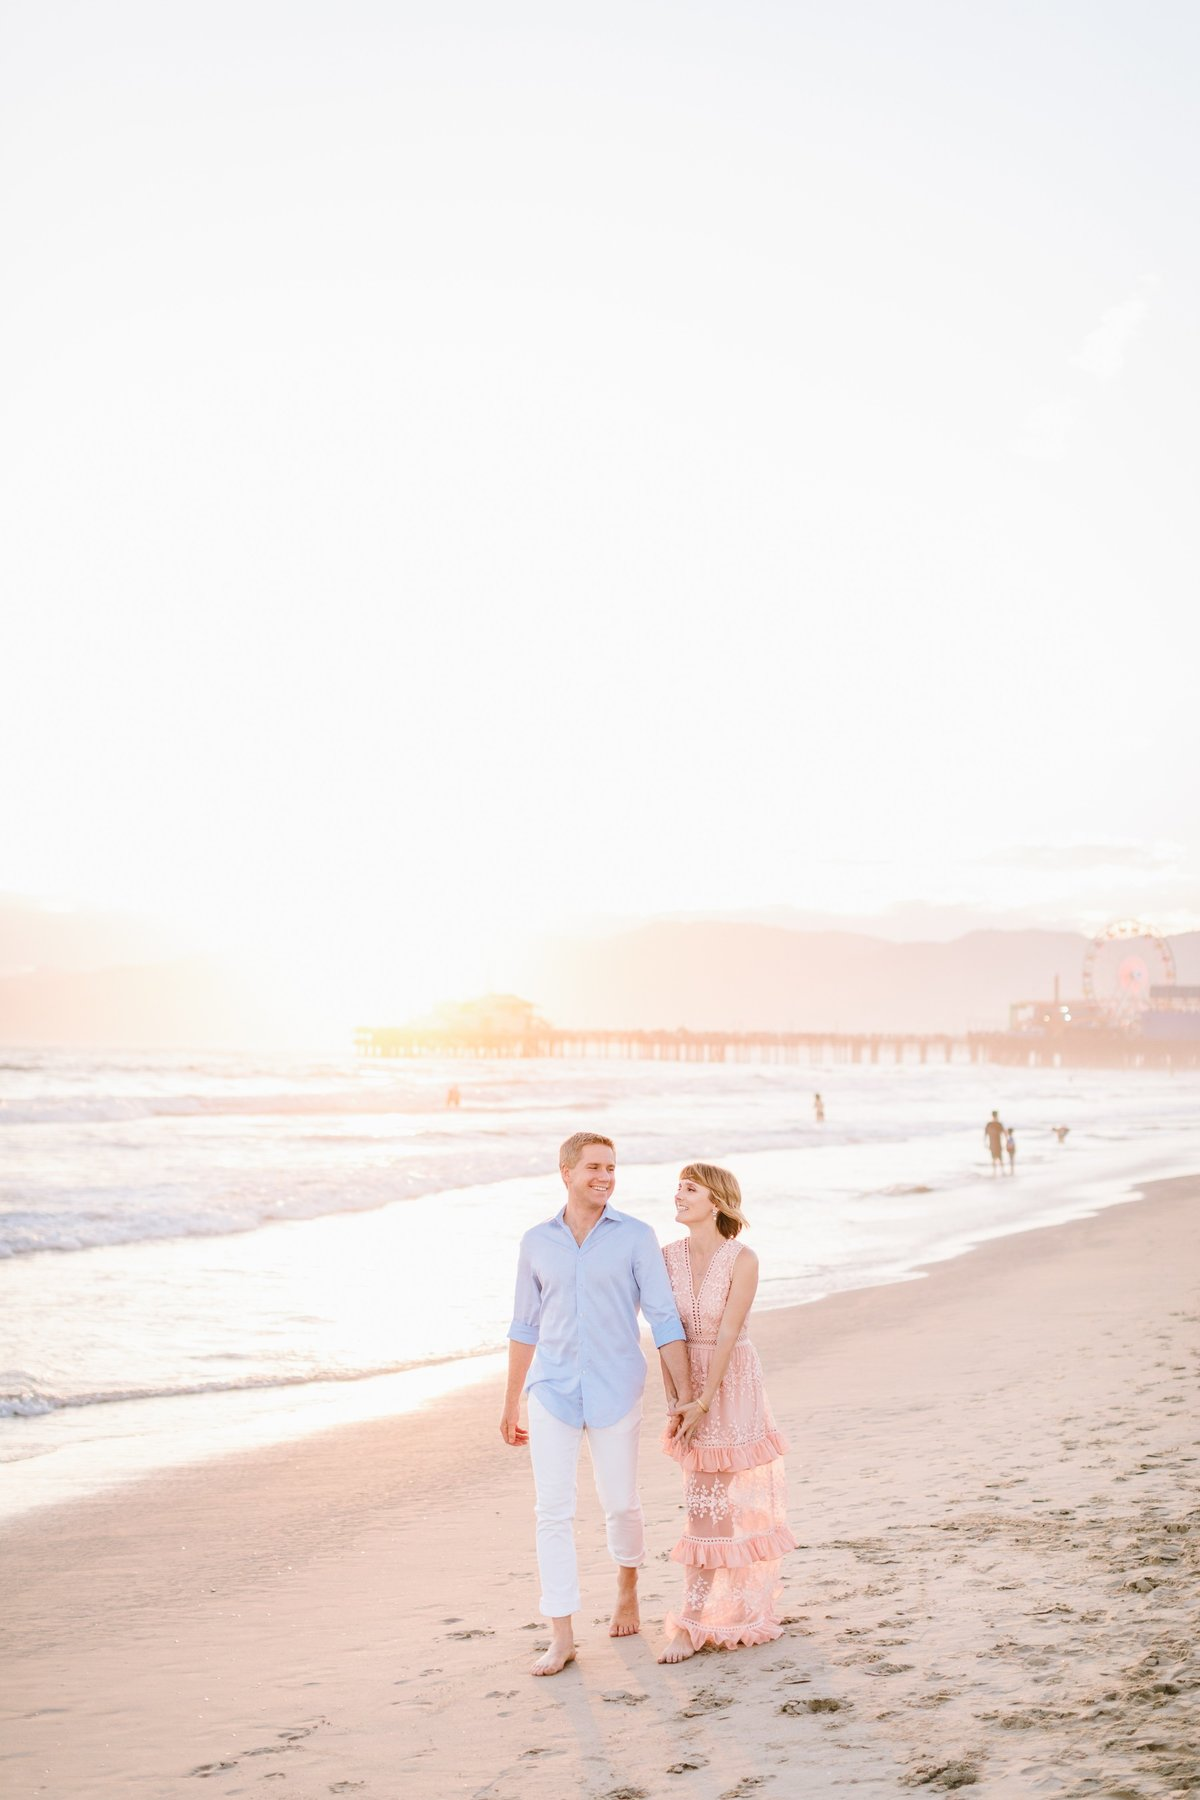 Best California Engagement Photographer-Jodee Debes Photography-92